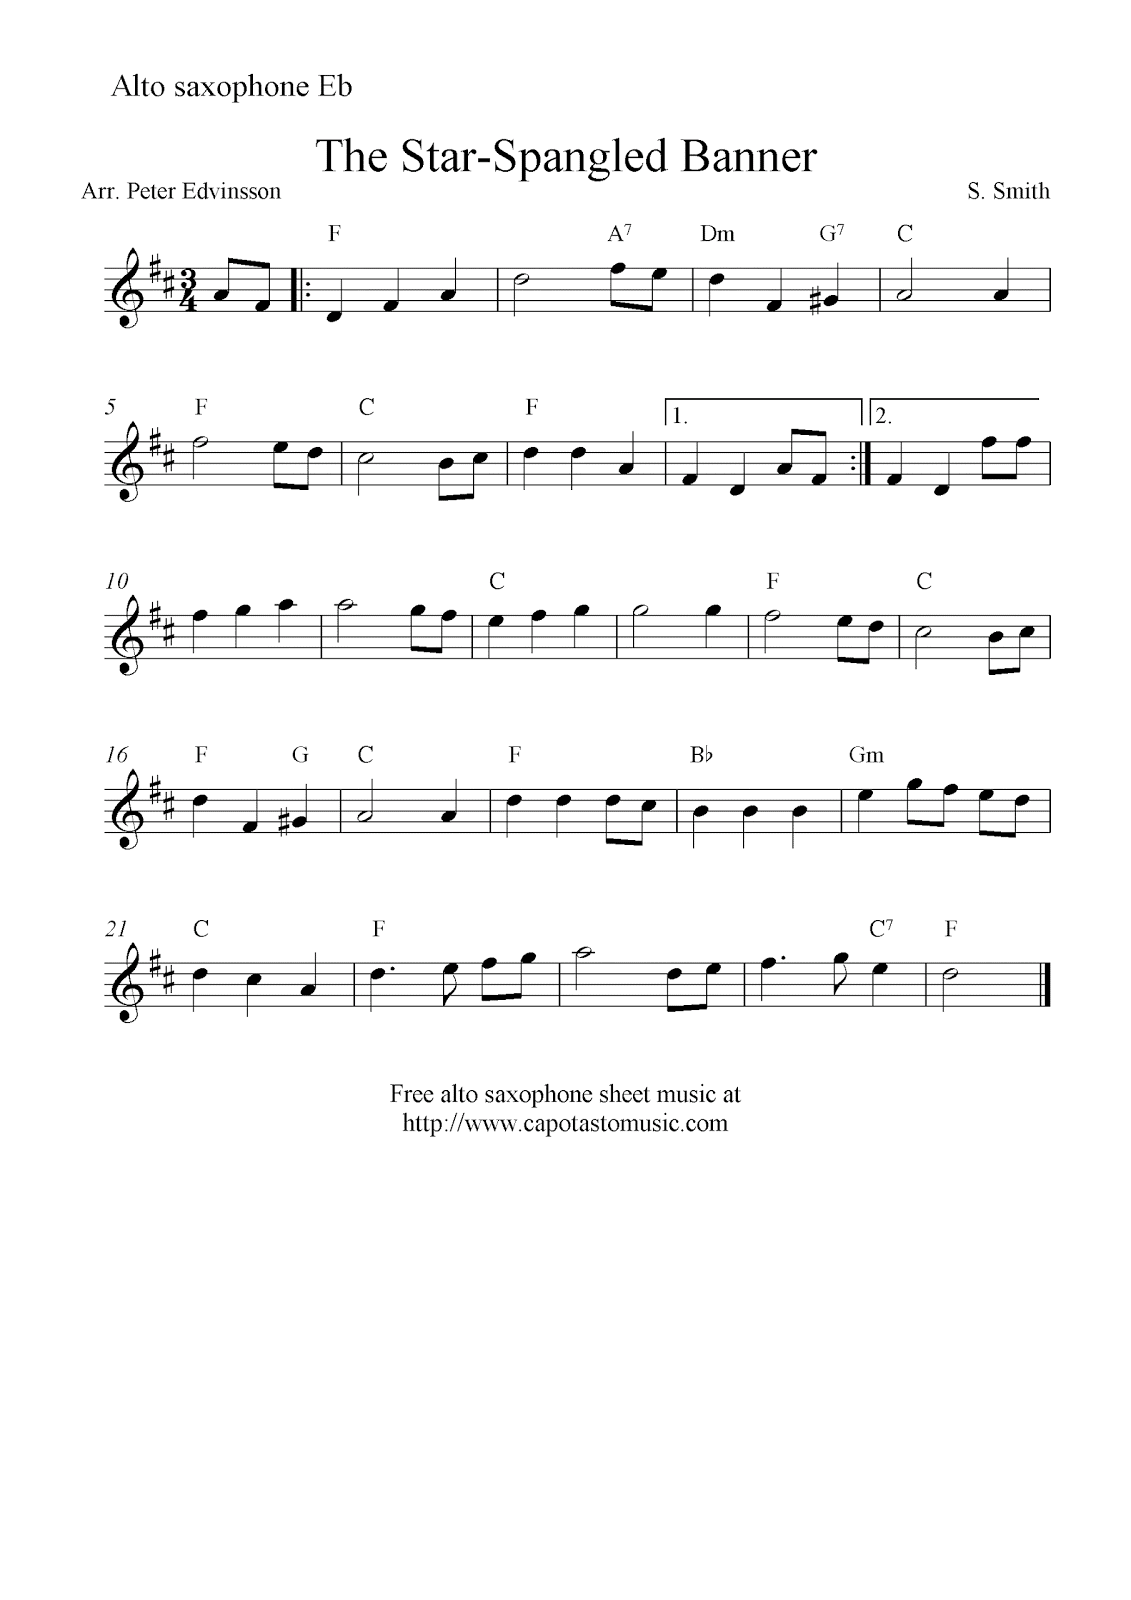 photo relating to Free Printable Alto Saxophone Sheet Music titled The Star-Spangled Banner, cost-free alto saxophone sheet audio notes